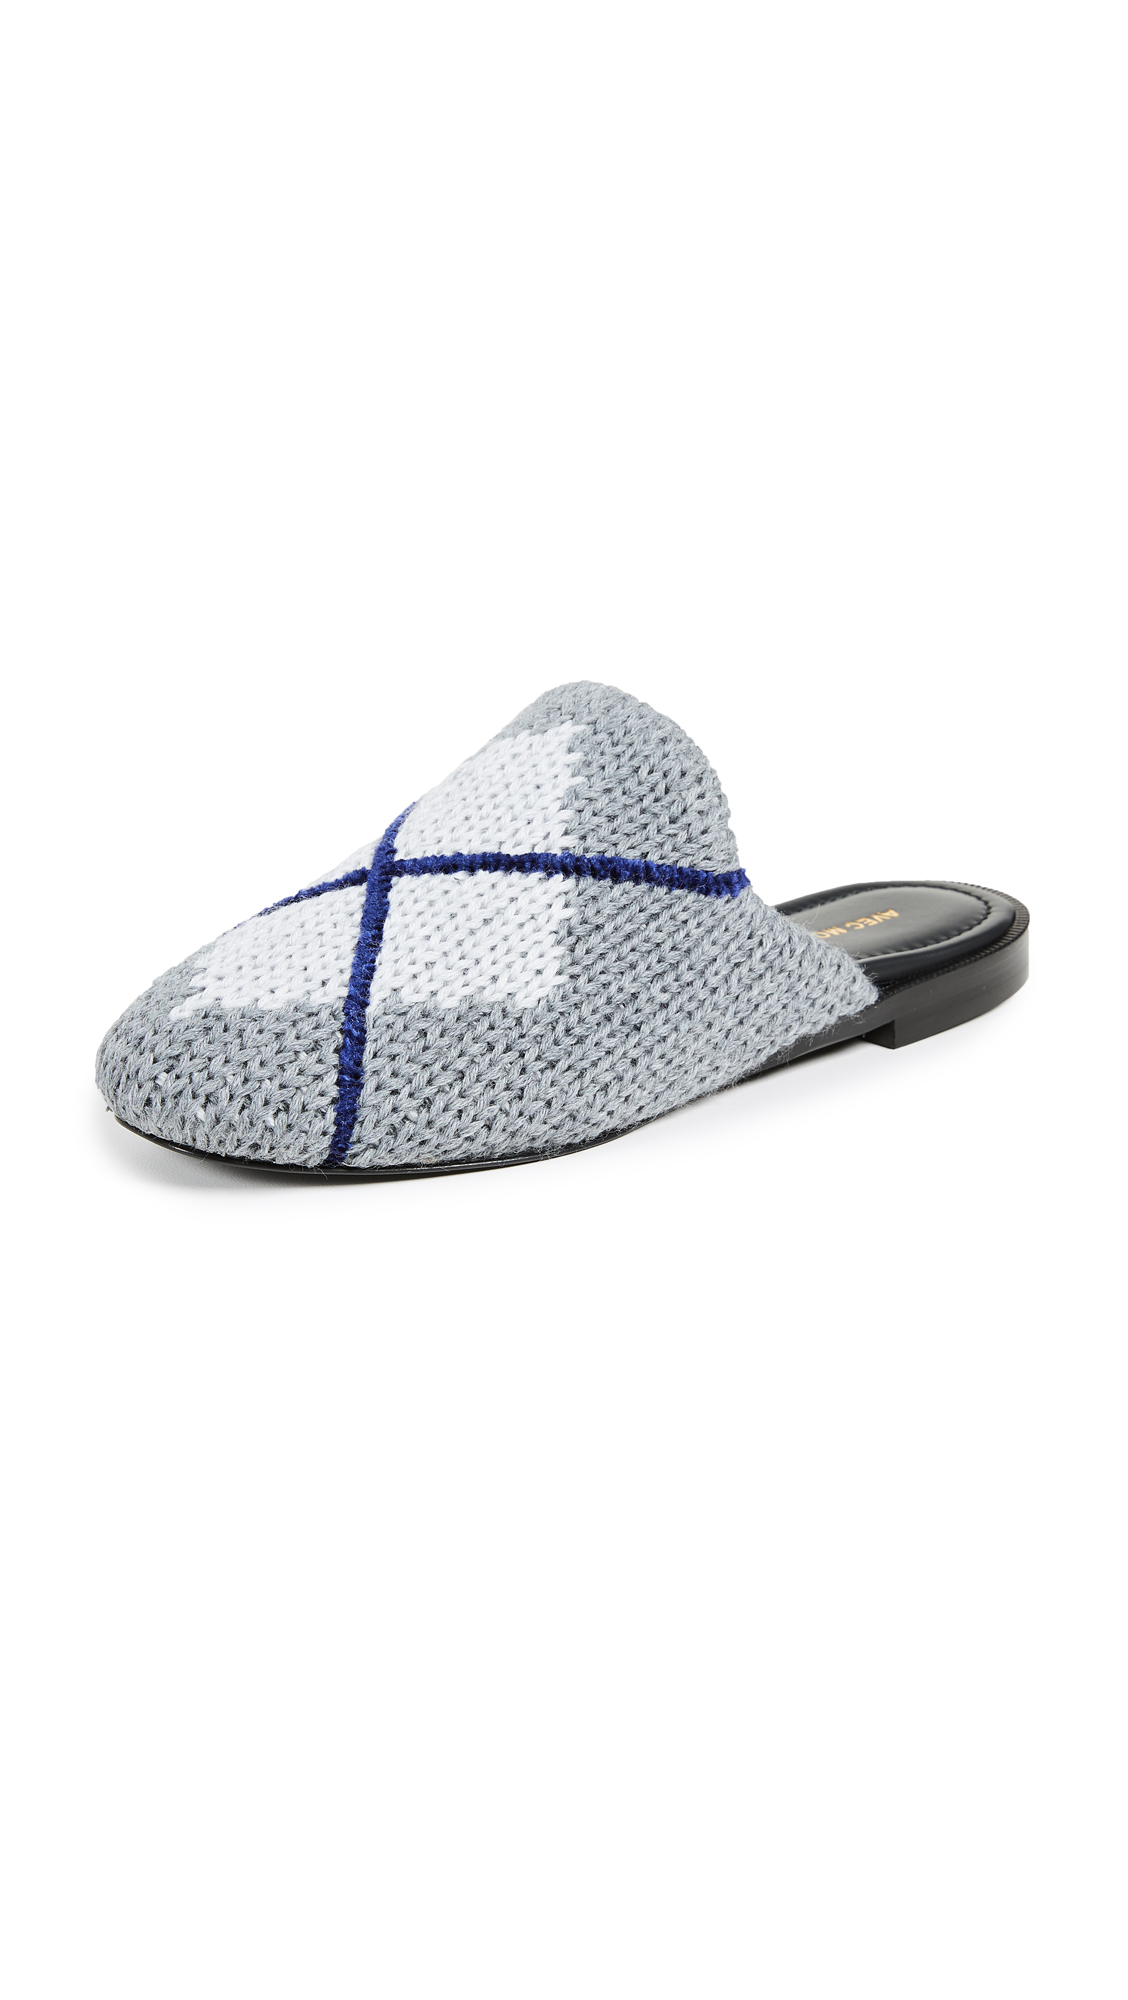 Avec Moderation Zermatt Argyle Slides - Grey